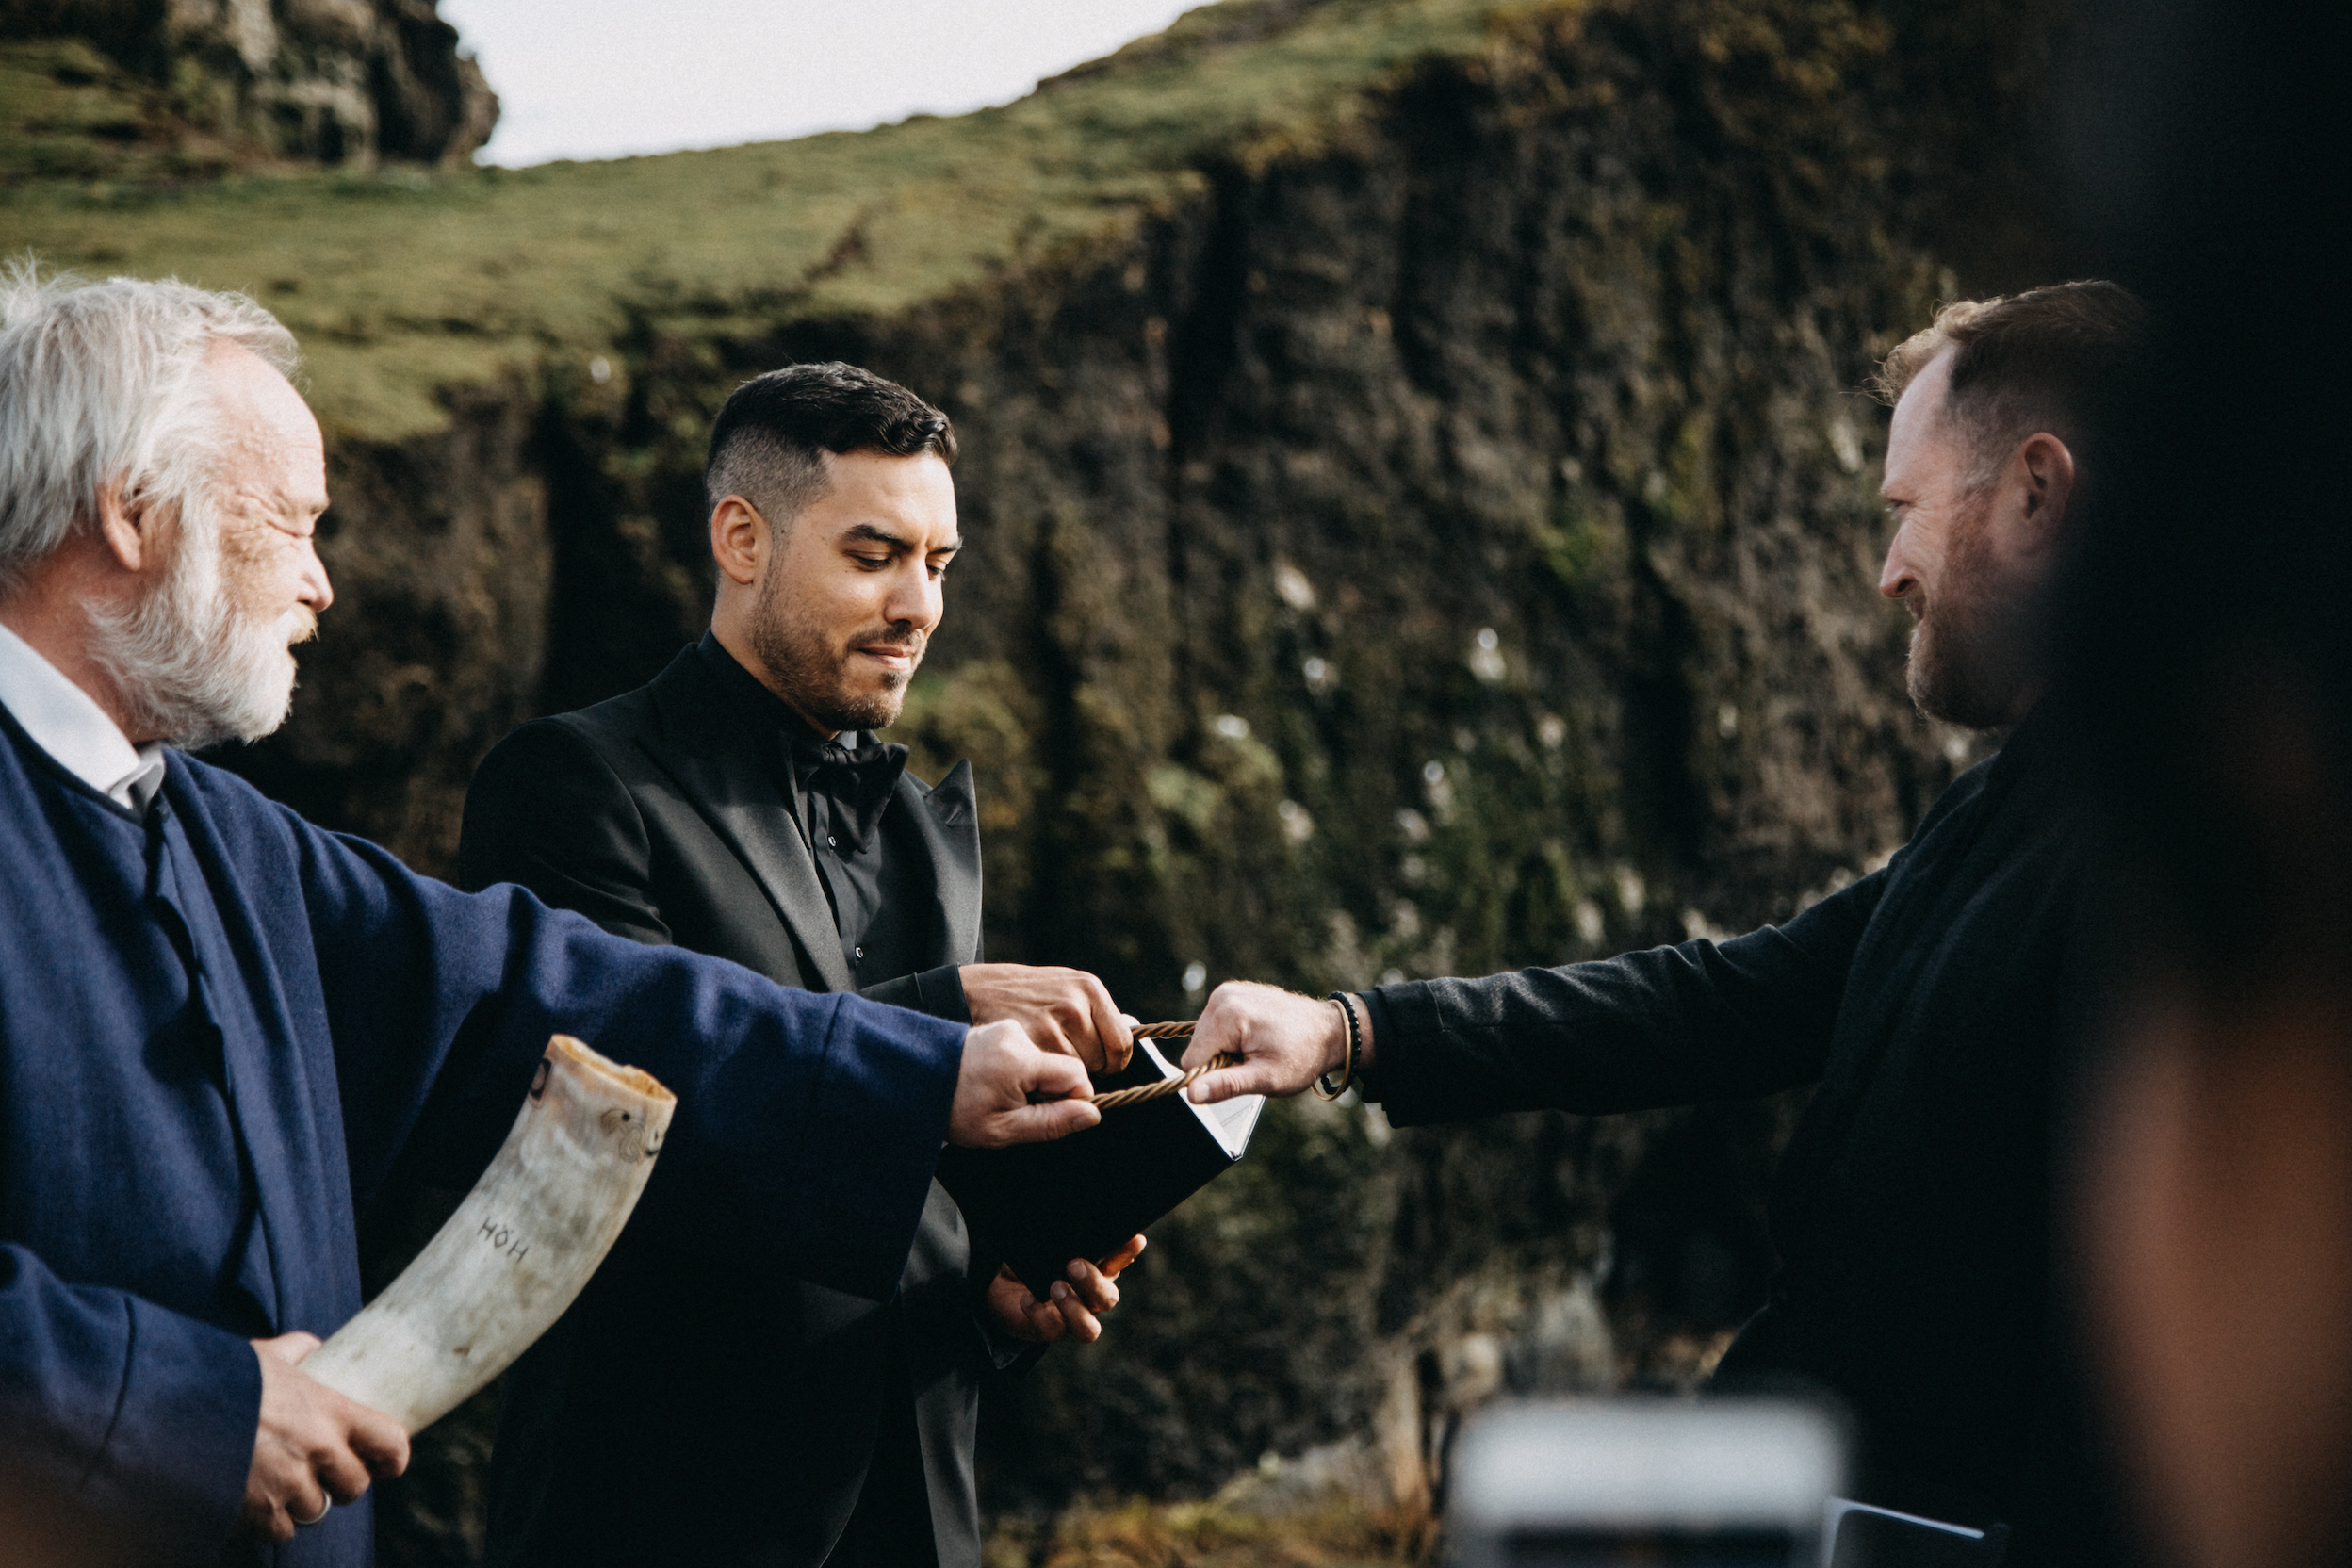 pink-iceland-gay-wedding-379